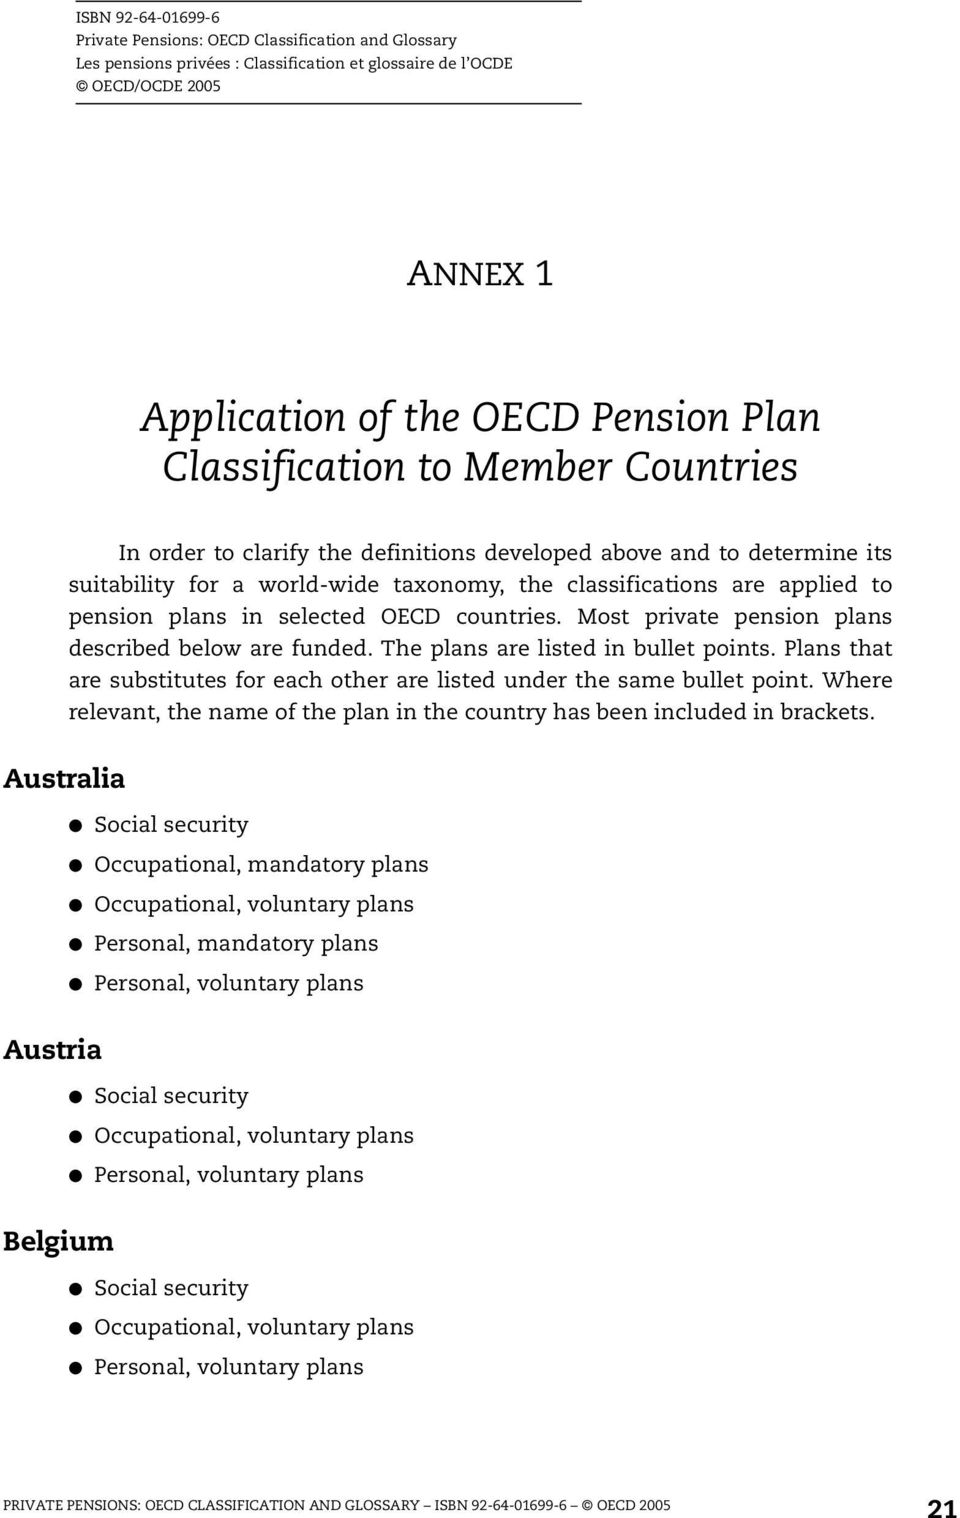 selected OECD countries. Most private pension plans described below are funded. The plans are listed in bullet points. Plans that are substitutes for each other are listed under the same bullet point.